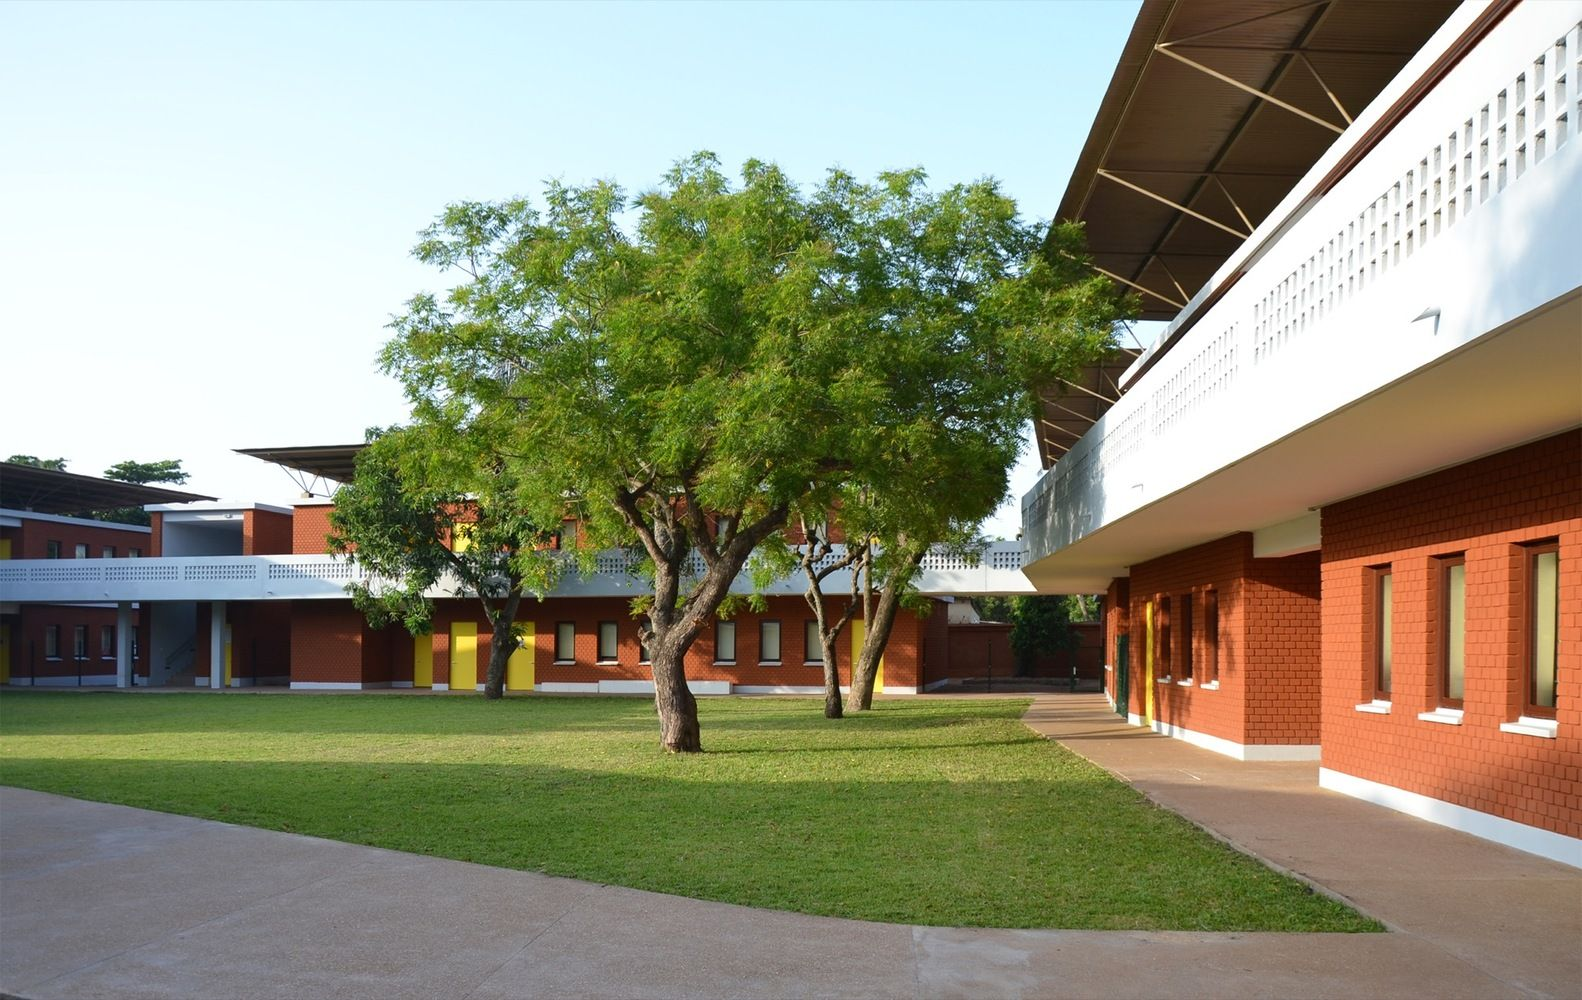 Gallery of French School in Lome / Segond-Guyon Architectes - 1